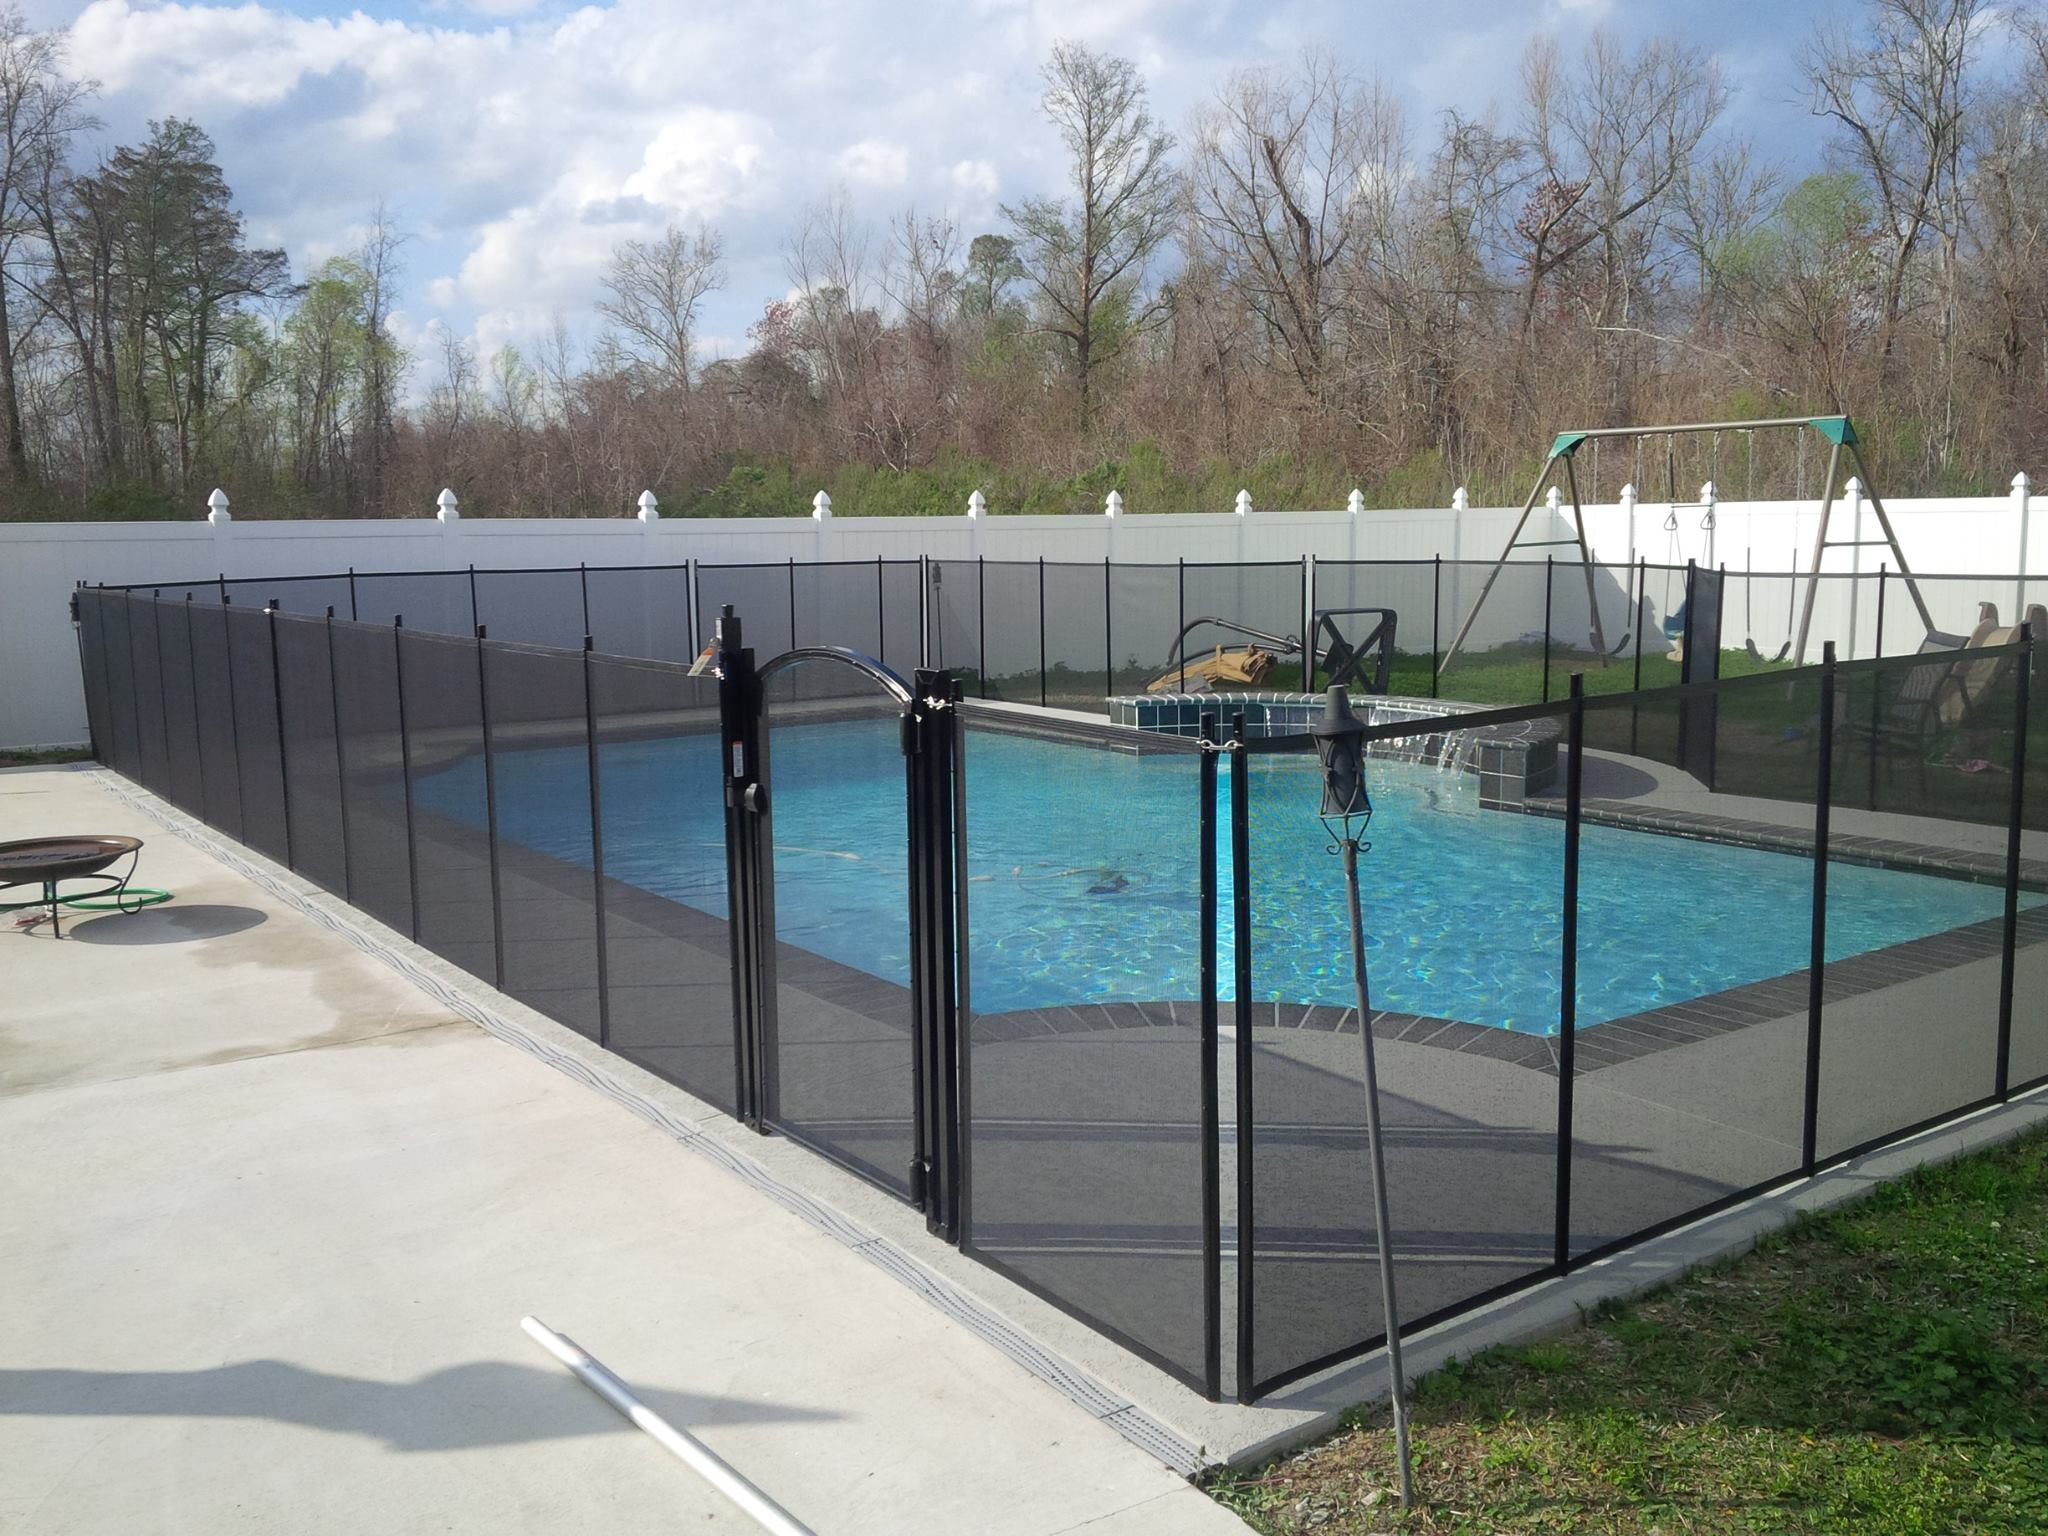 Life Saver removable mesh pool fence installed in Biloxi, MS